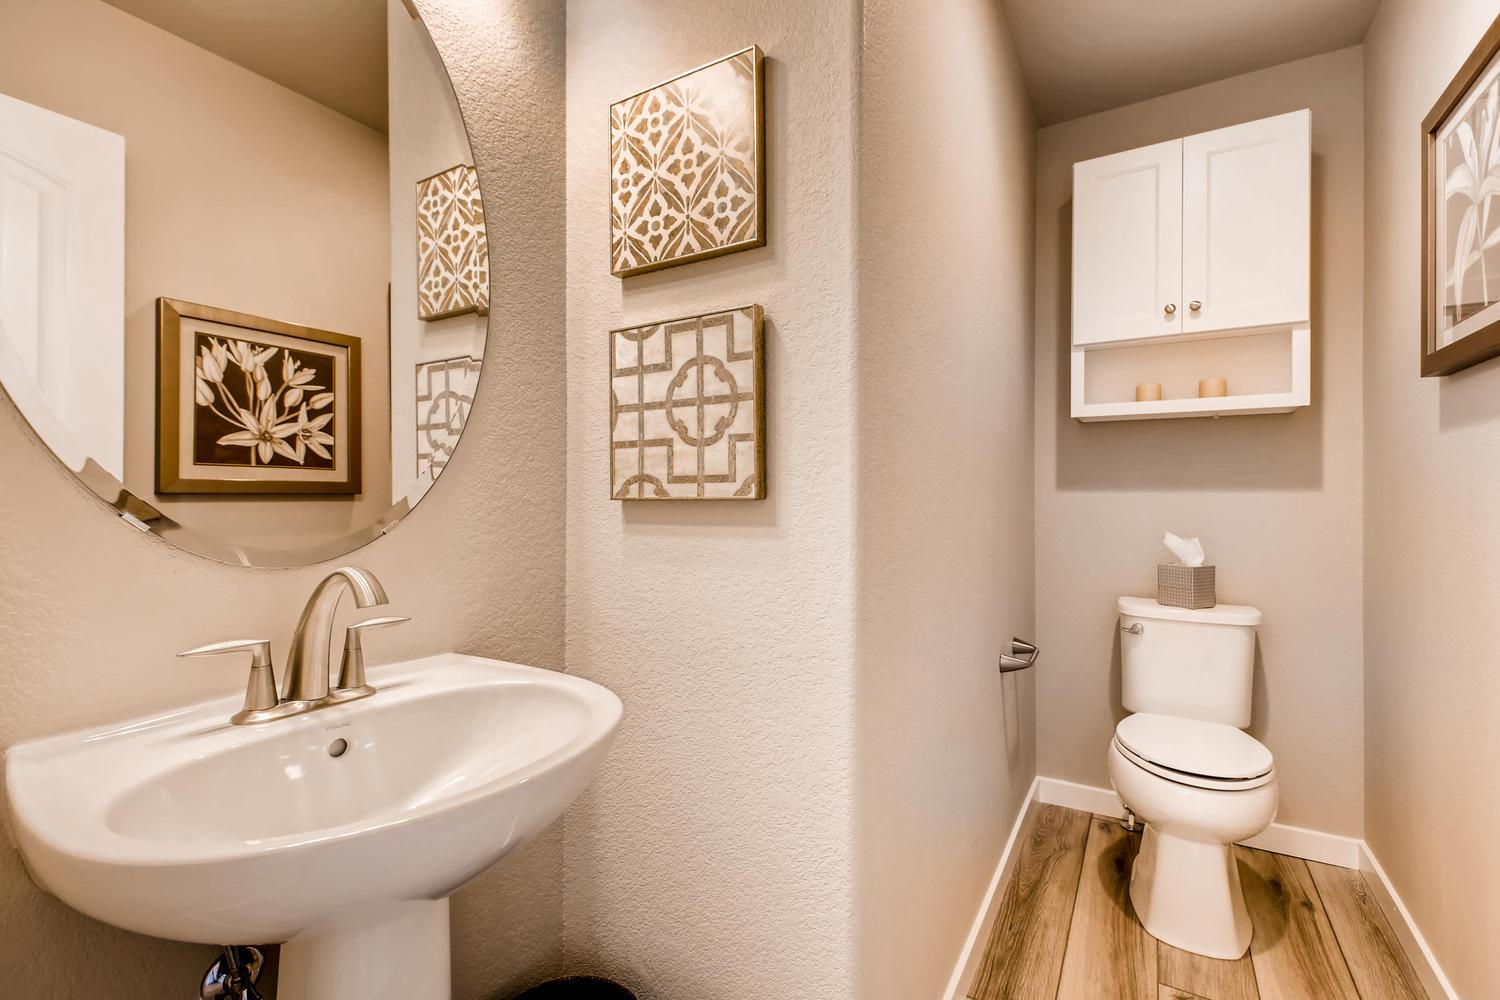 Bathroom featured in the Sierra By Classic Homes in Colorado Springs, CO